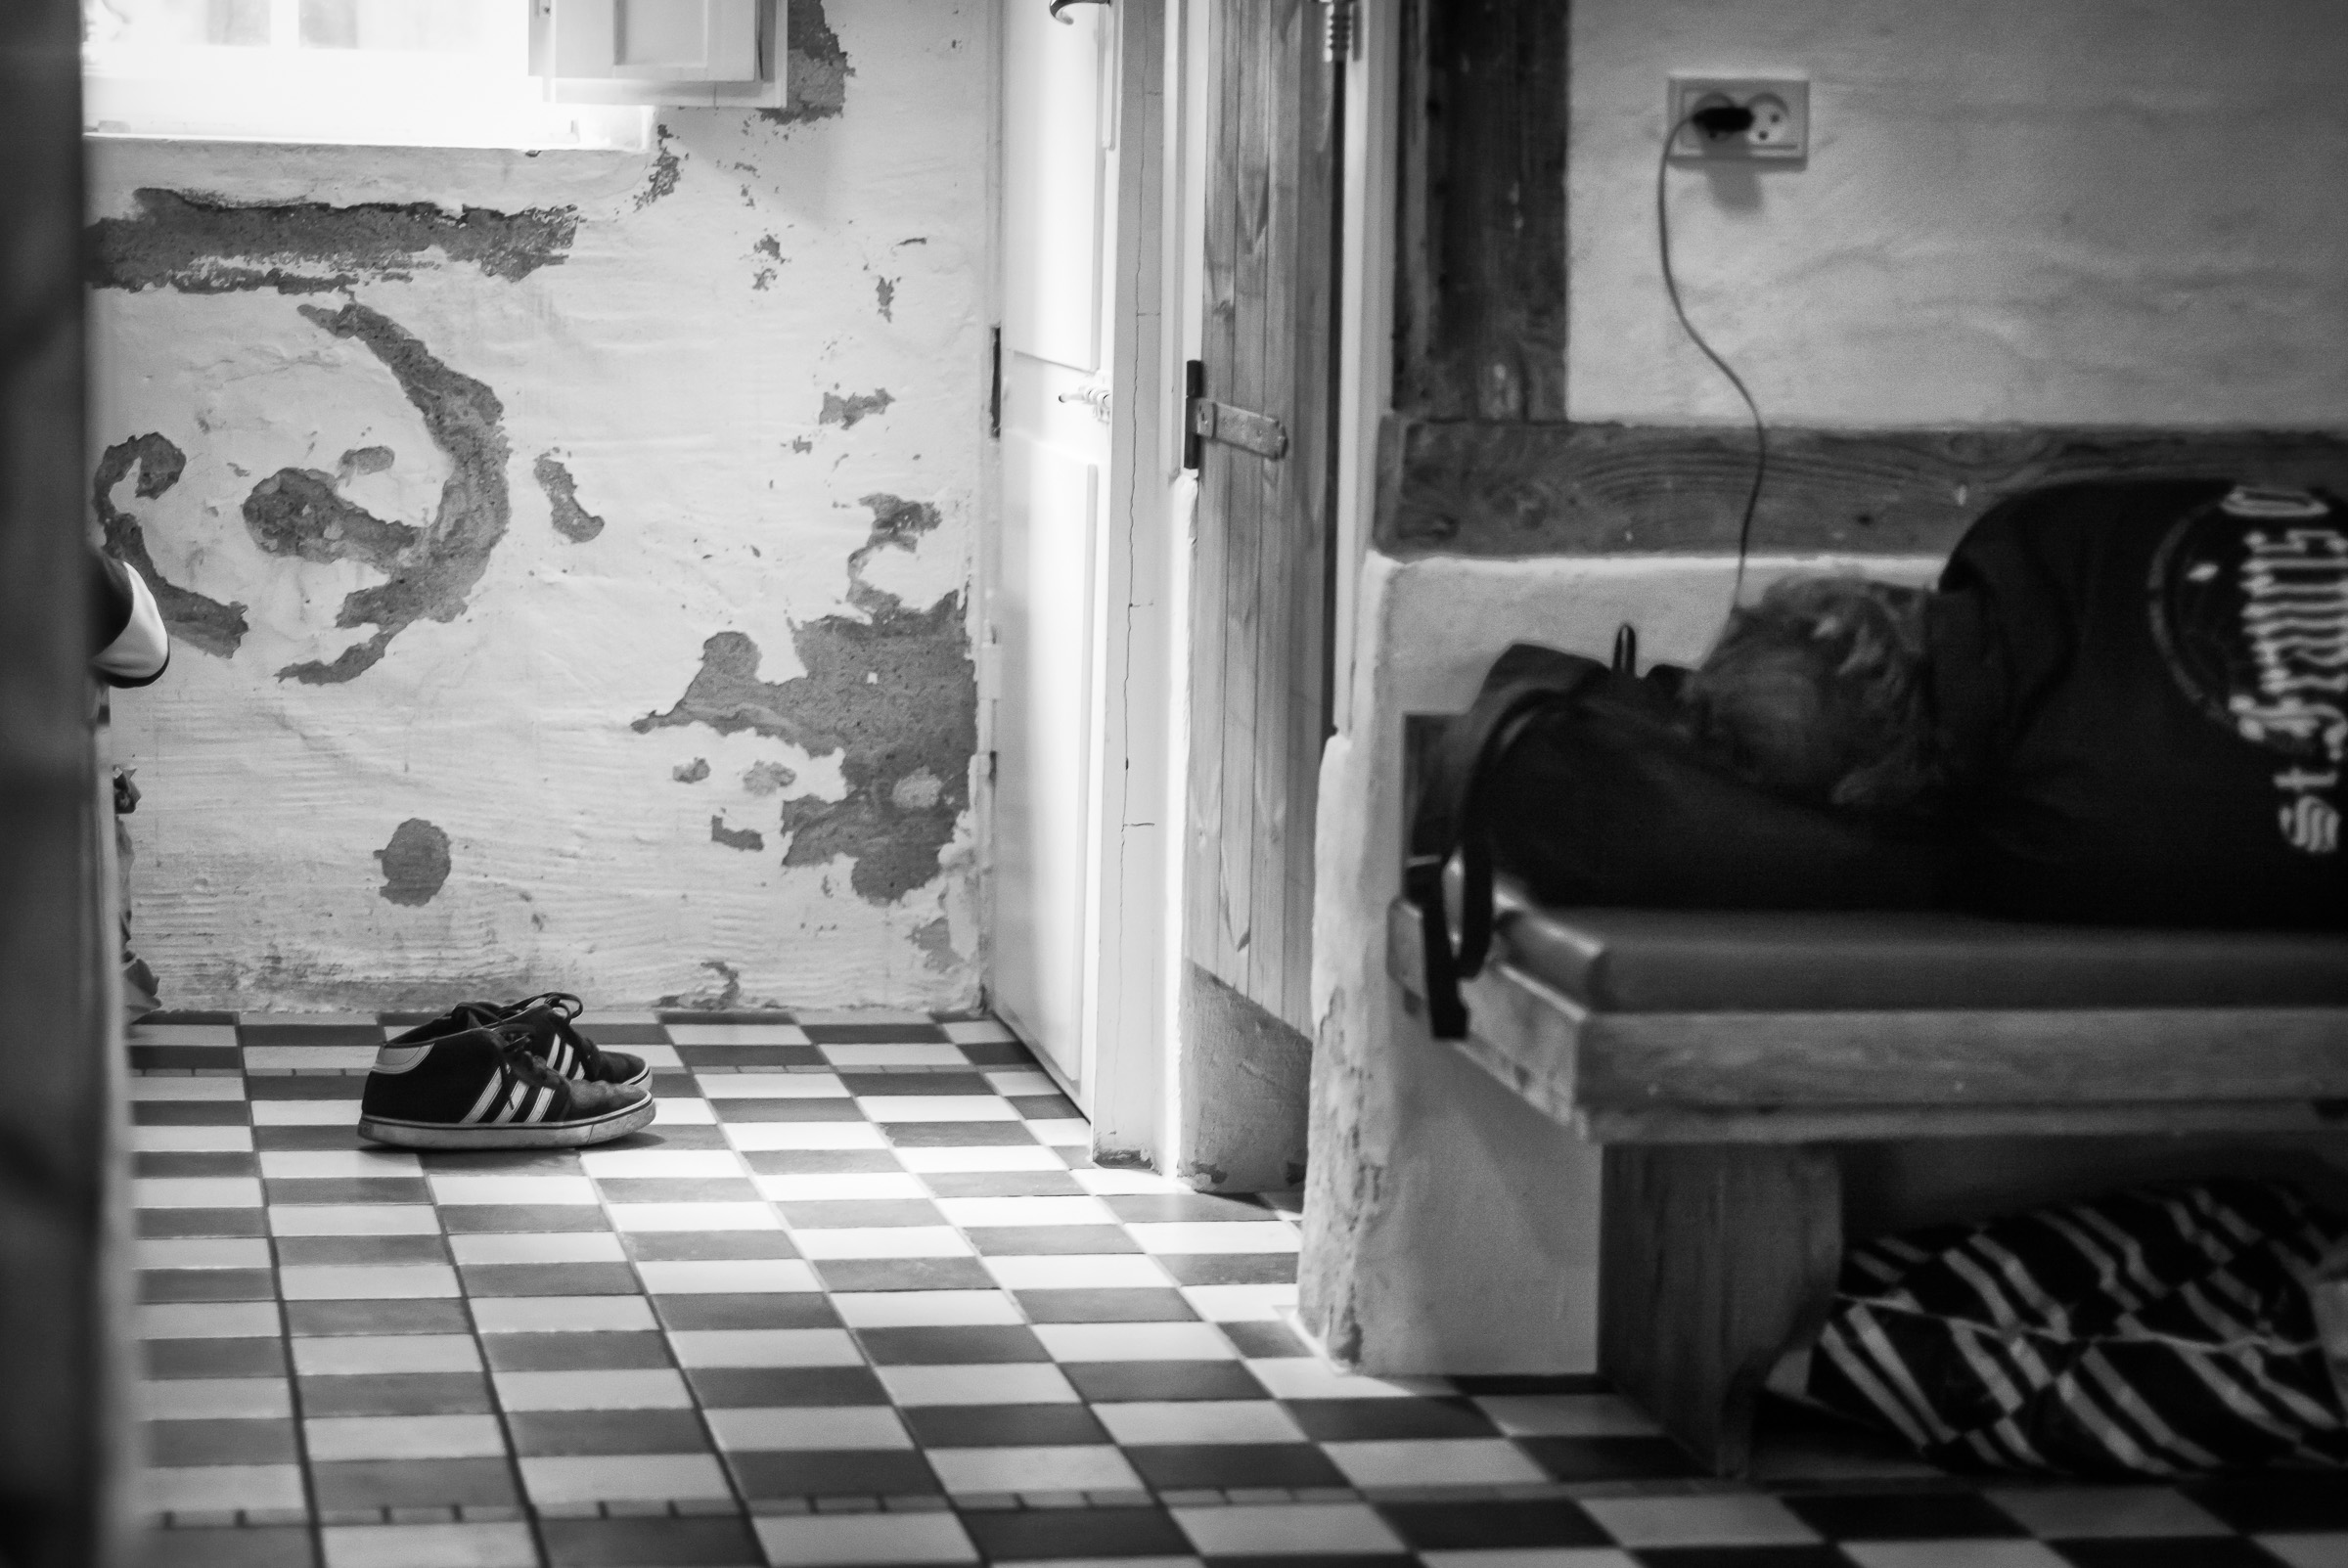 Poverty – taken for the Danish NGO, Kirkens Korshær who helps people, who are stigmatized and often feel abandoned by the community as such because they live in poverty, loneliness, homelessness, psychological illness or substance abuse. © Massimo Fiorentino, all Rights Reserved